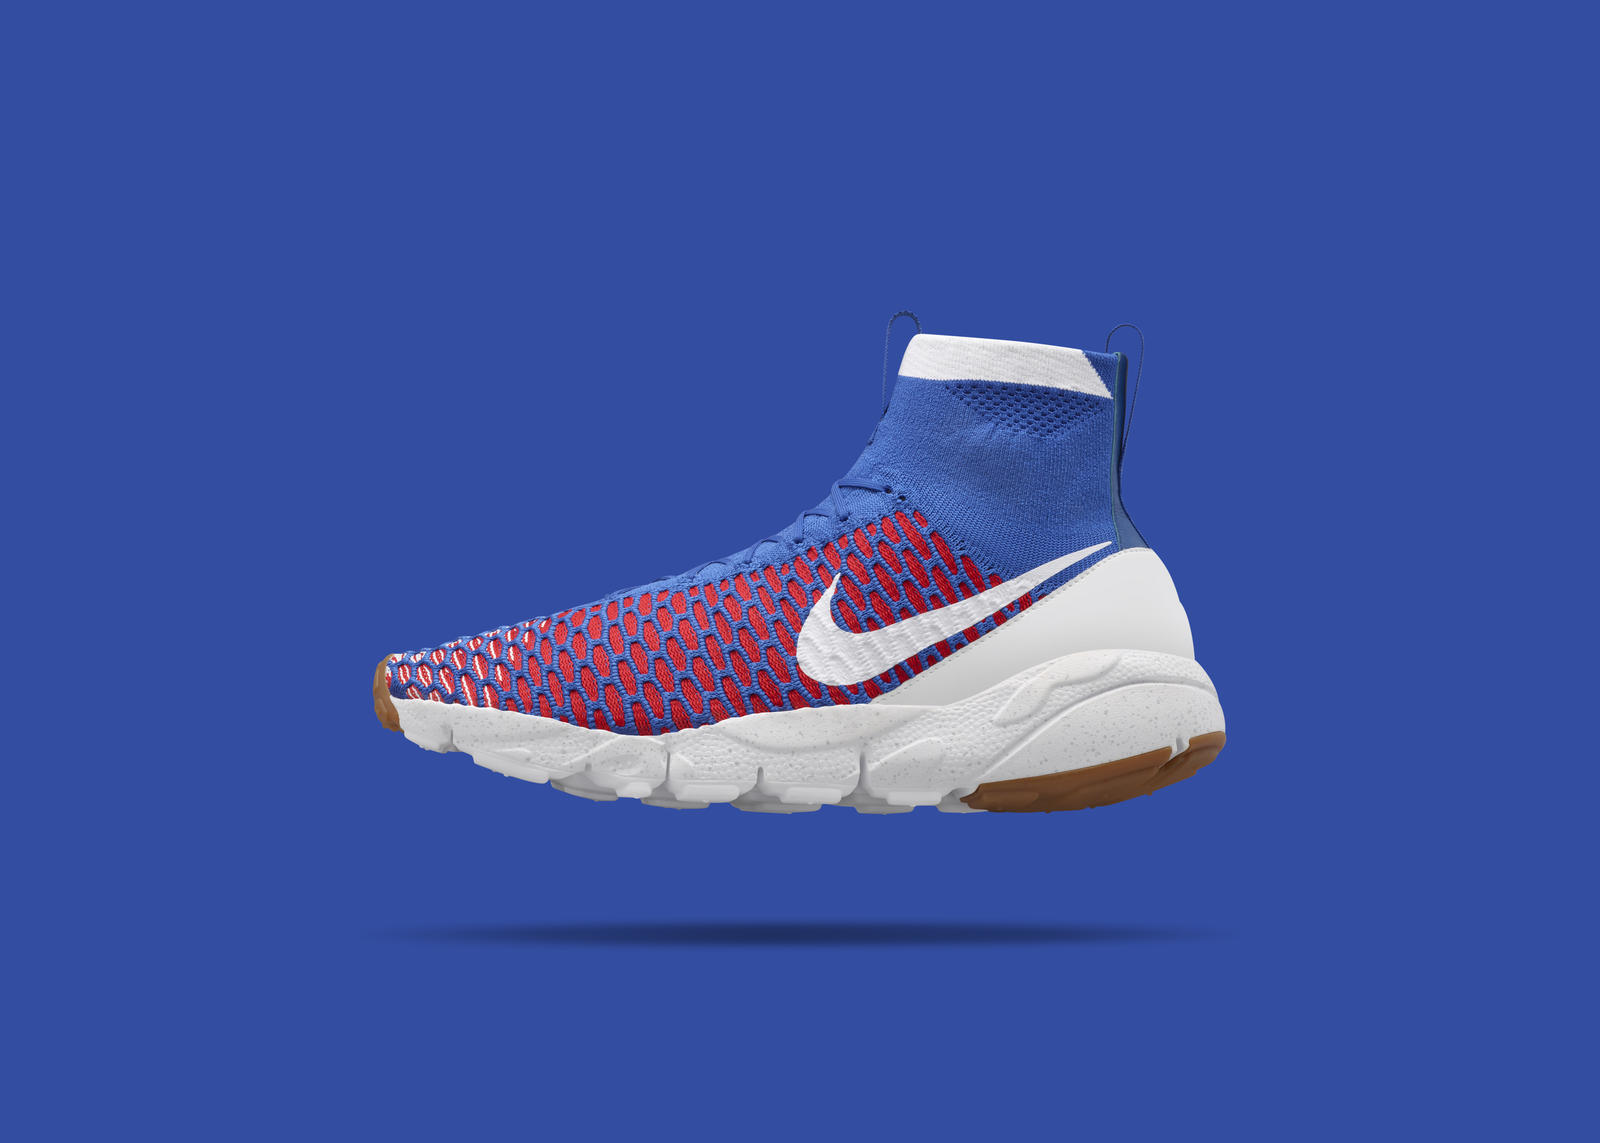 NikeLab-Air-Footscape-Magista-Royal-4